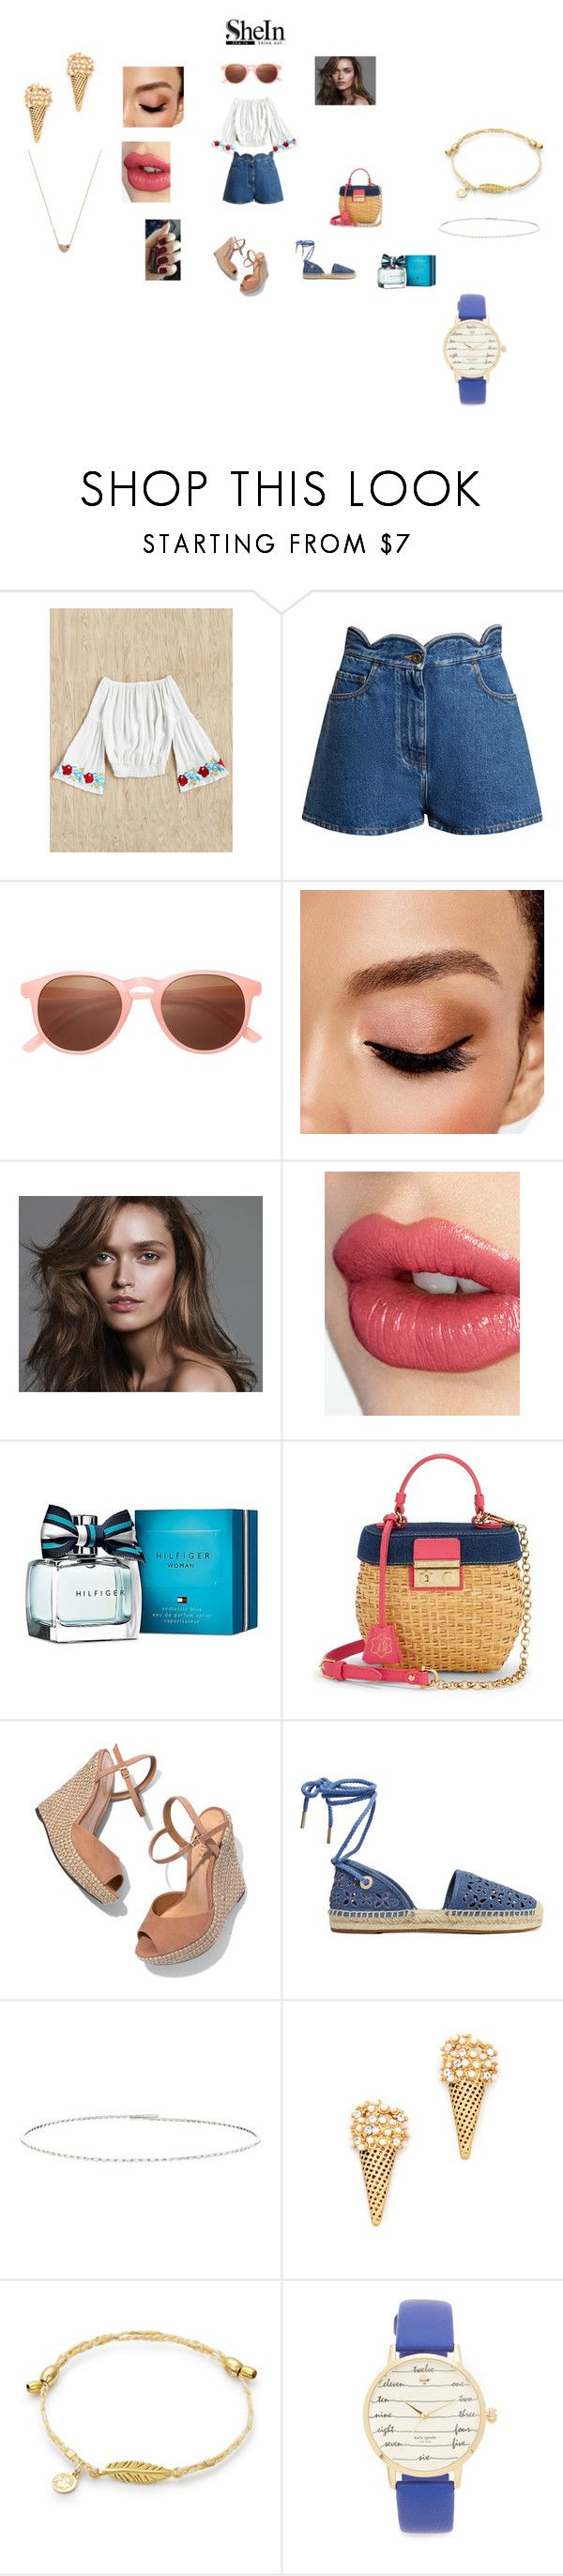 """""""SHEIN: WIN $30 COUPON!"""" by annali1983 ❤ liked on Polyvore featuring Valentino, Avon, Charlotte Tilbury, Tommy Hilfiger, Draper James, Schutz, MICHAEL Michael Kors, Suzanne Kalan, Marc Jacobs and Kate Spade"""